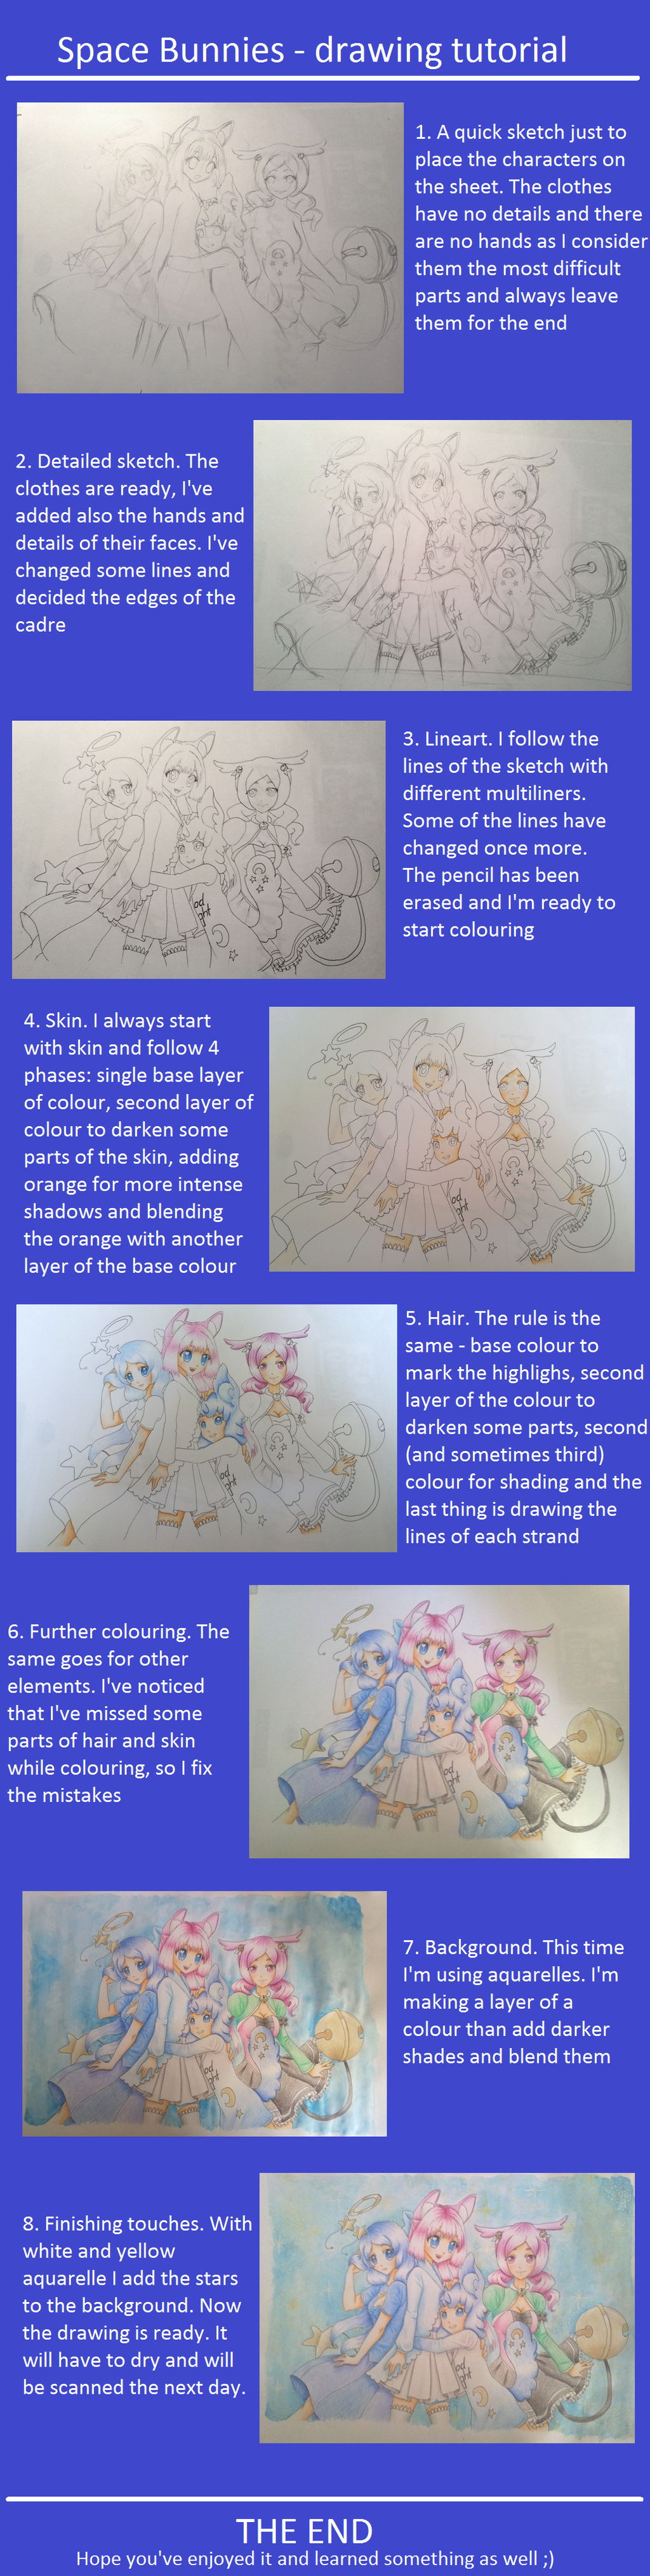 Space bunnies drawing tutorial by draconine on deviantart for Space tutorial